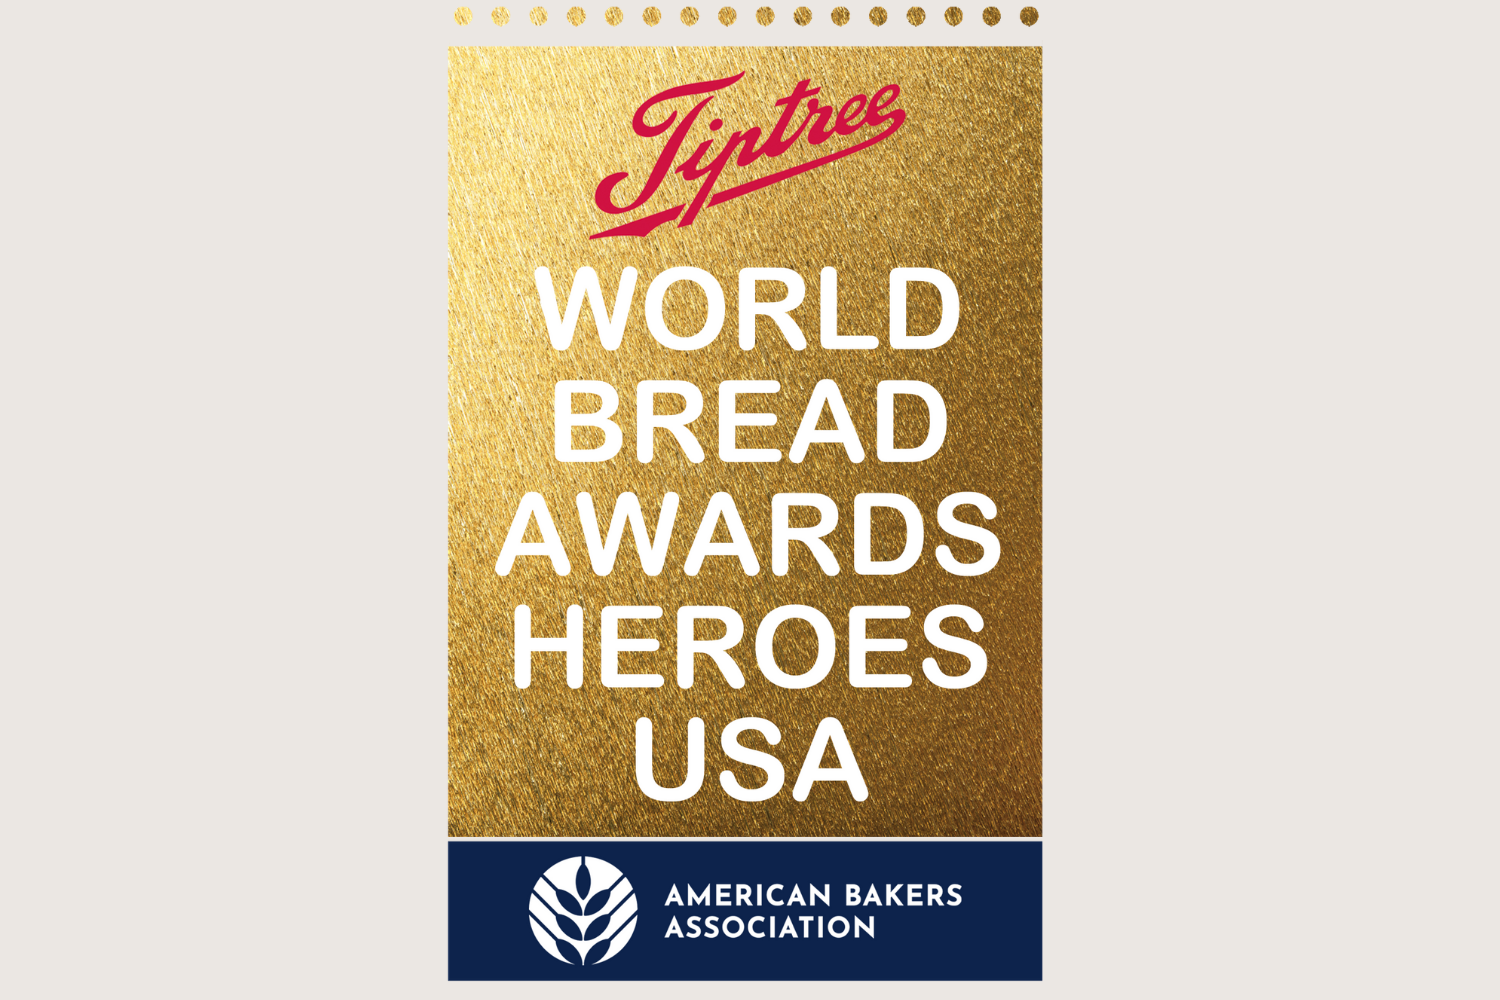 world bread awards rectangle banner